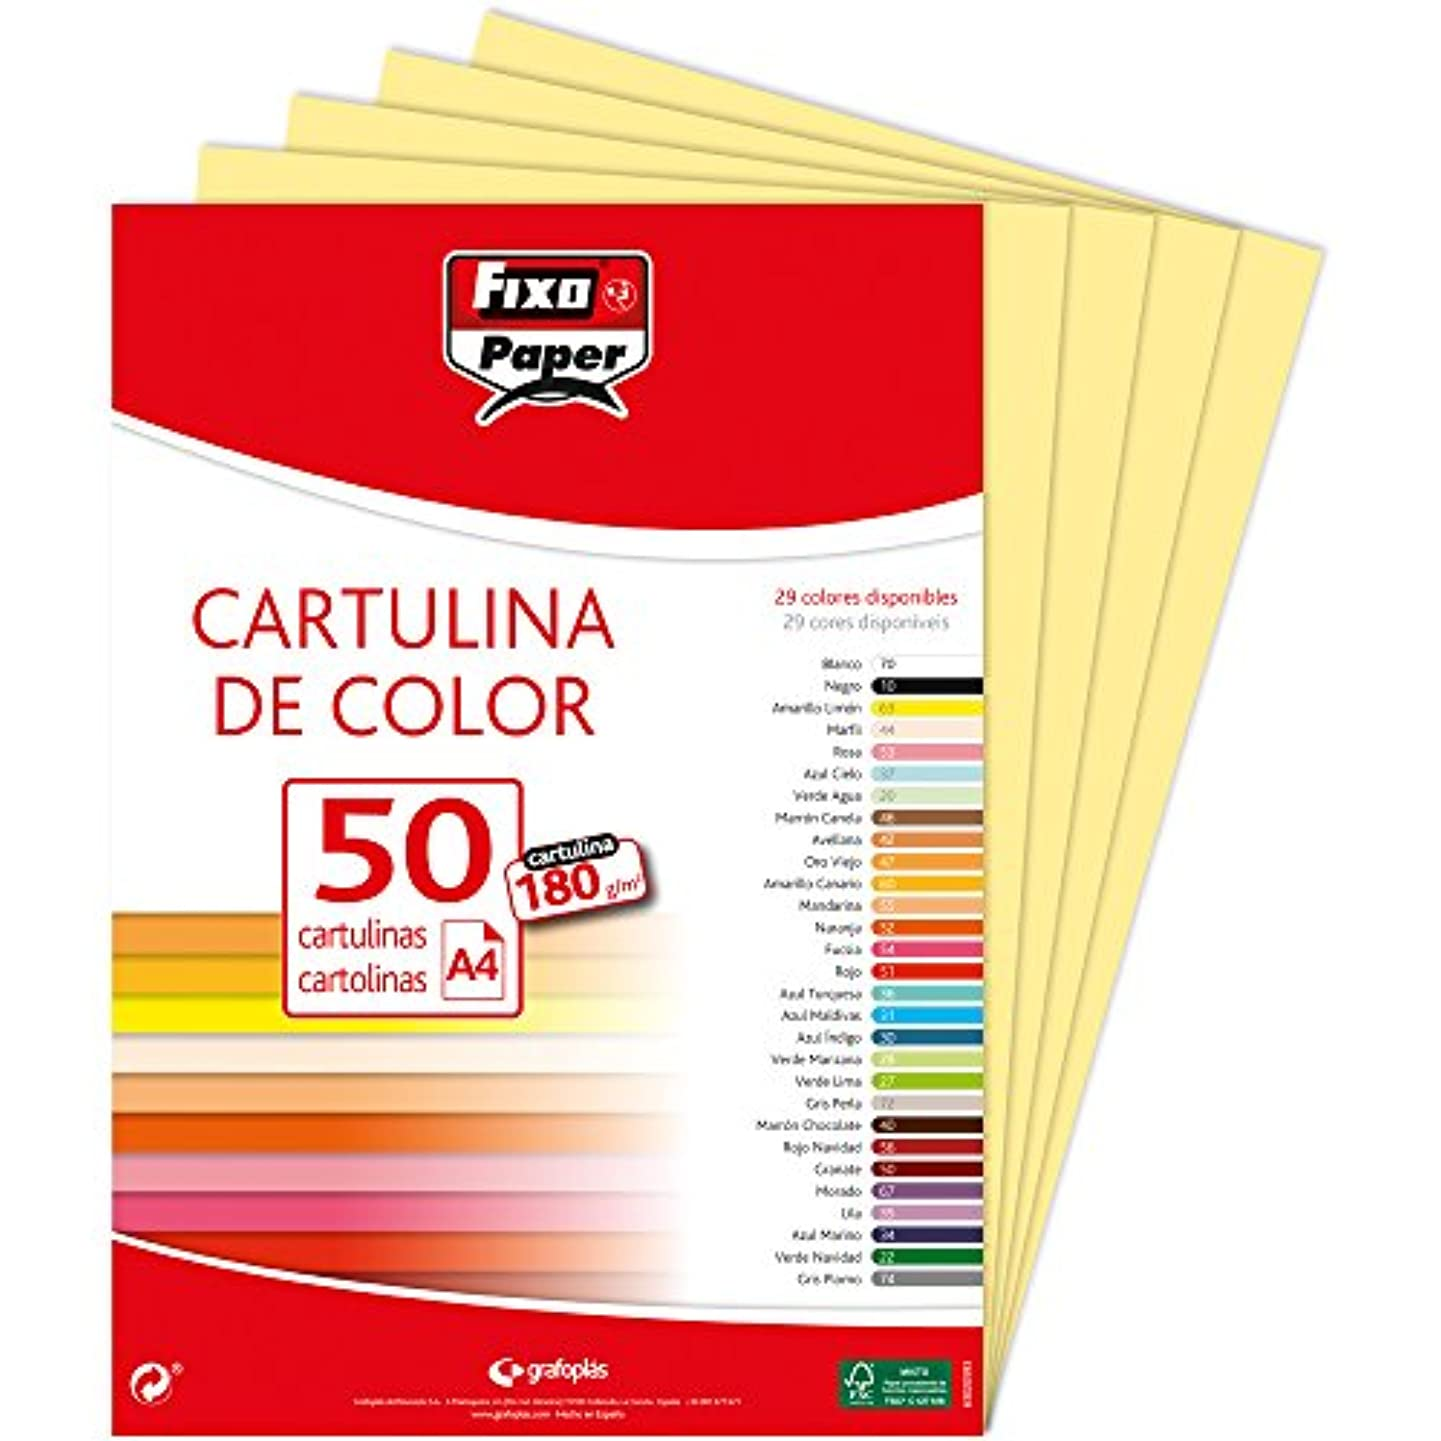 Fixo 11110363?–?Pack of 50?Card, A4, Yellow Parchi